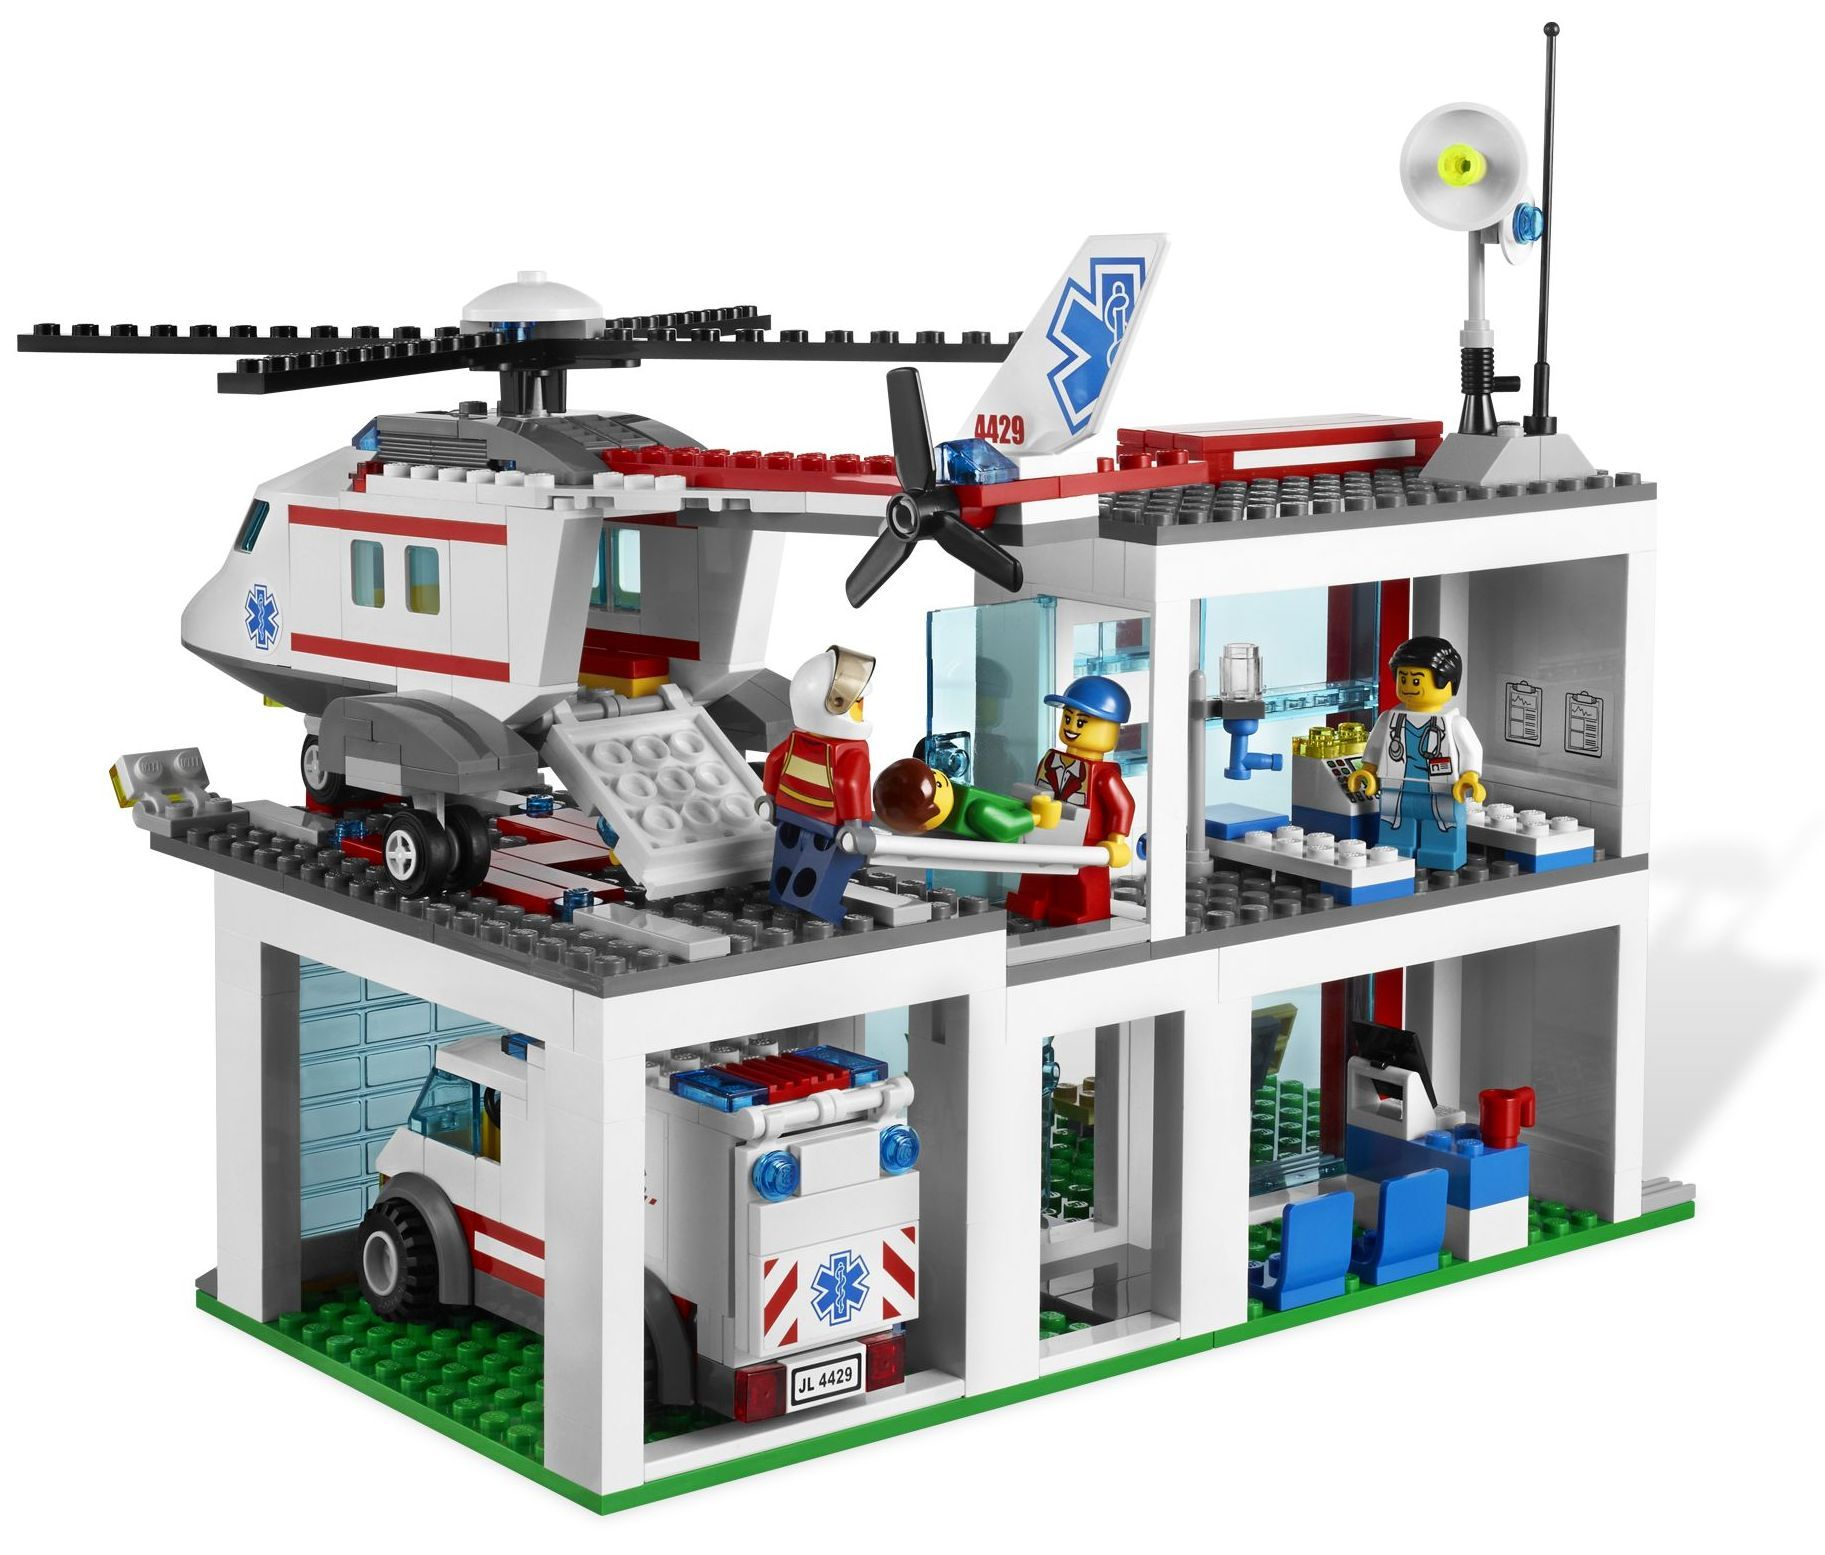 Lego Hospital 2016 Google Search Lego Hospital Pinterest